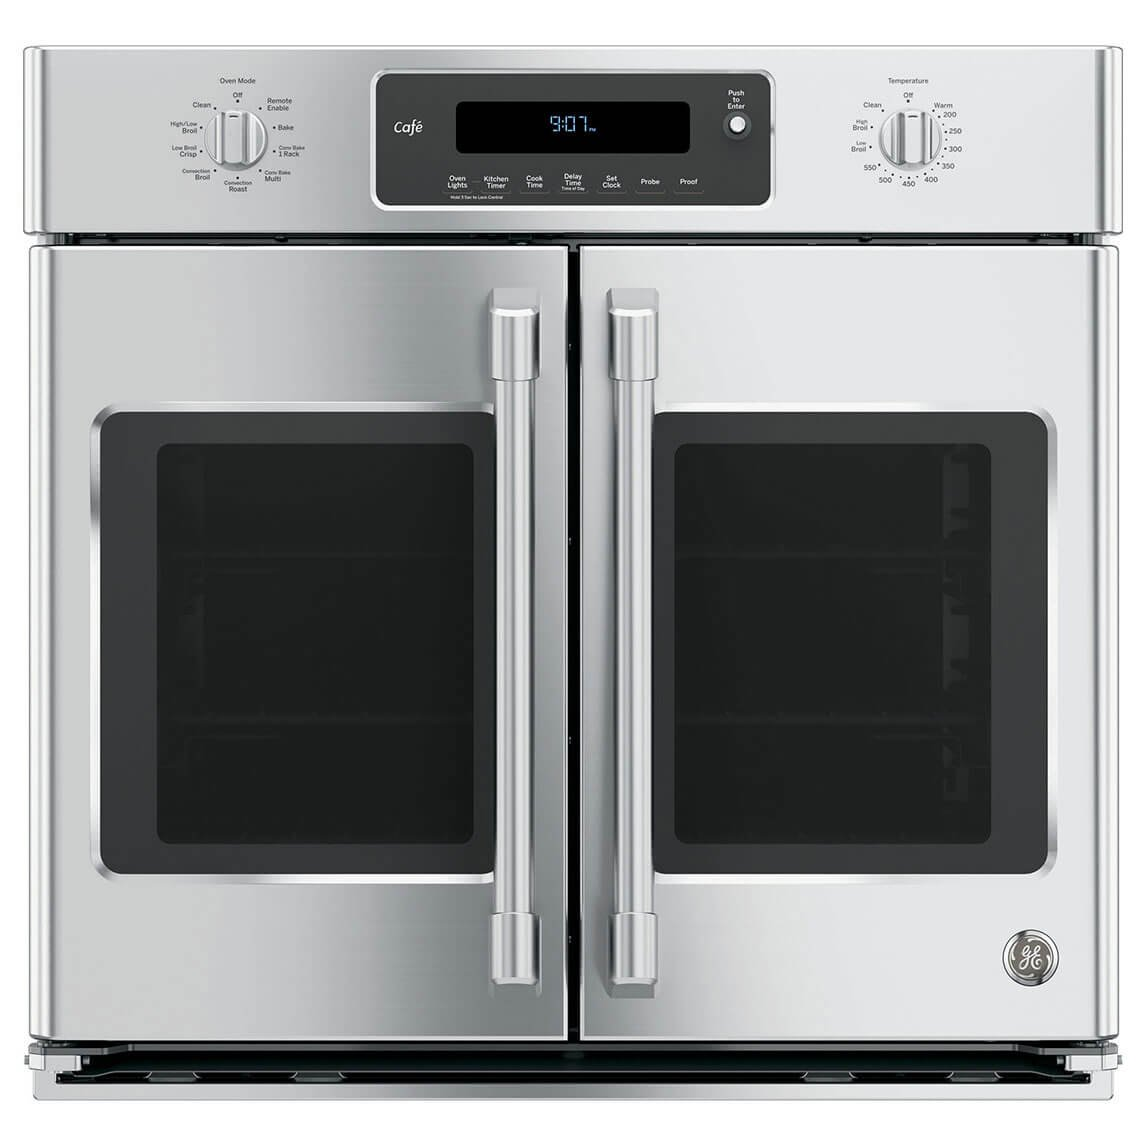 GE Cafe CT9070SHSS 30'' Single French Door Electric Wall Oven with Self-Clean in Stainless Steel